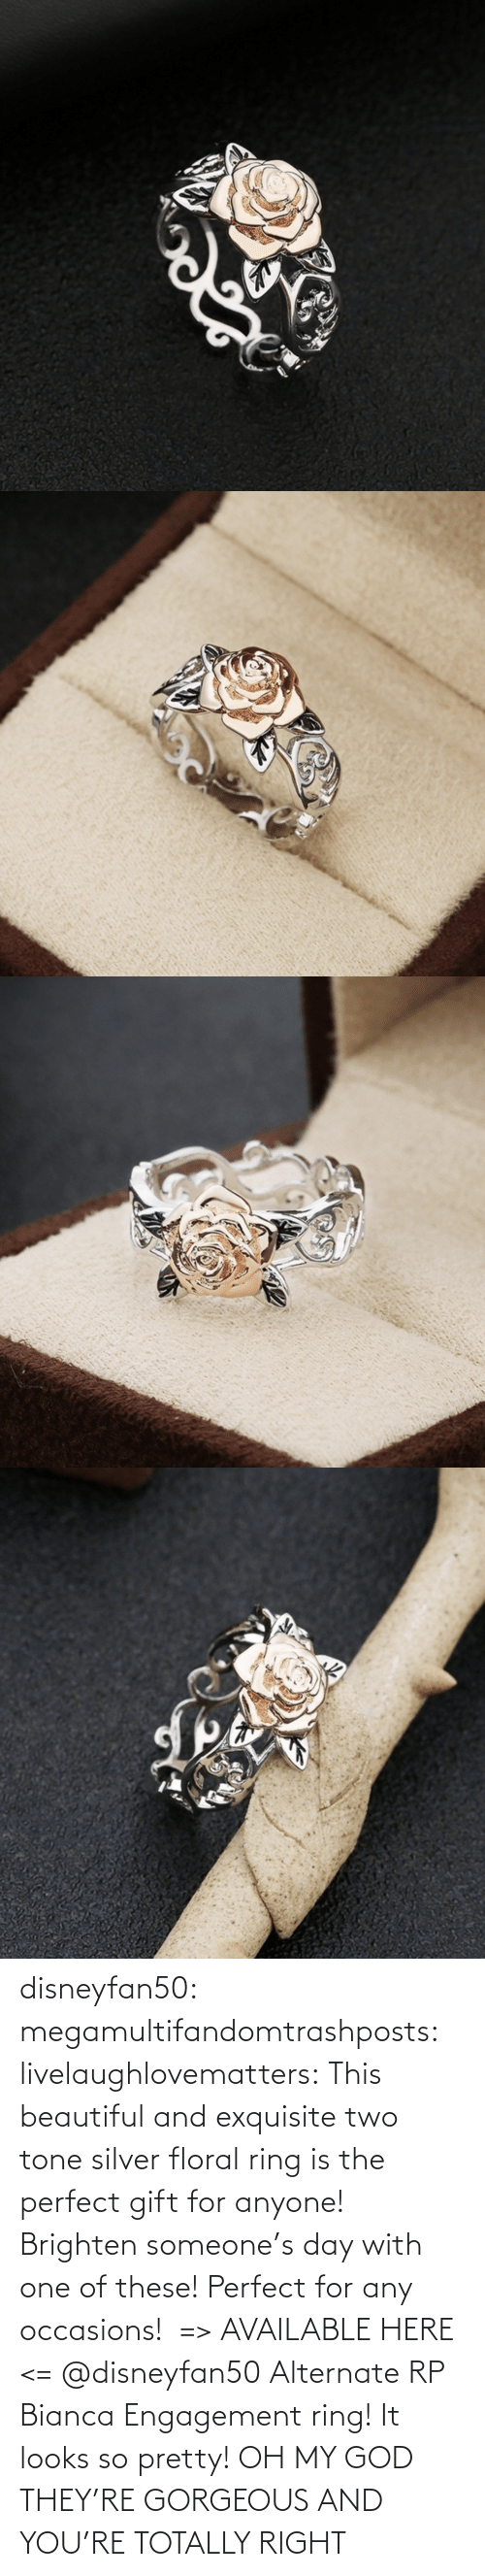 With: disneyfan50: megamultifandomtrashposts:  livelaughlovematters:  This beautiful and exquisite two tone silver floral ring is the perfect gift for anyone! Brighten someone's day with one of these! Perfect for any occasions!  => AVAILABLE HERE <=    @disneyfan50 Alternate RP Bianca Engagement ring! It looks so pretty!  OH MY GOD THEY'RE GORGEOUS AND YOU'RE TOTALLY RIGHT